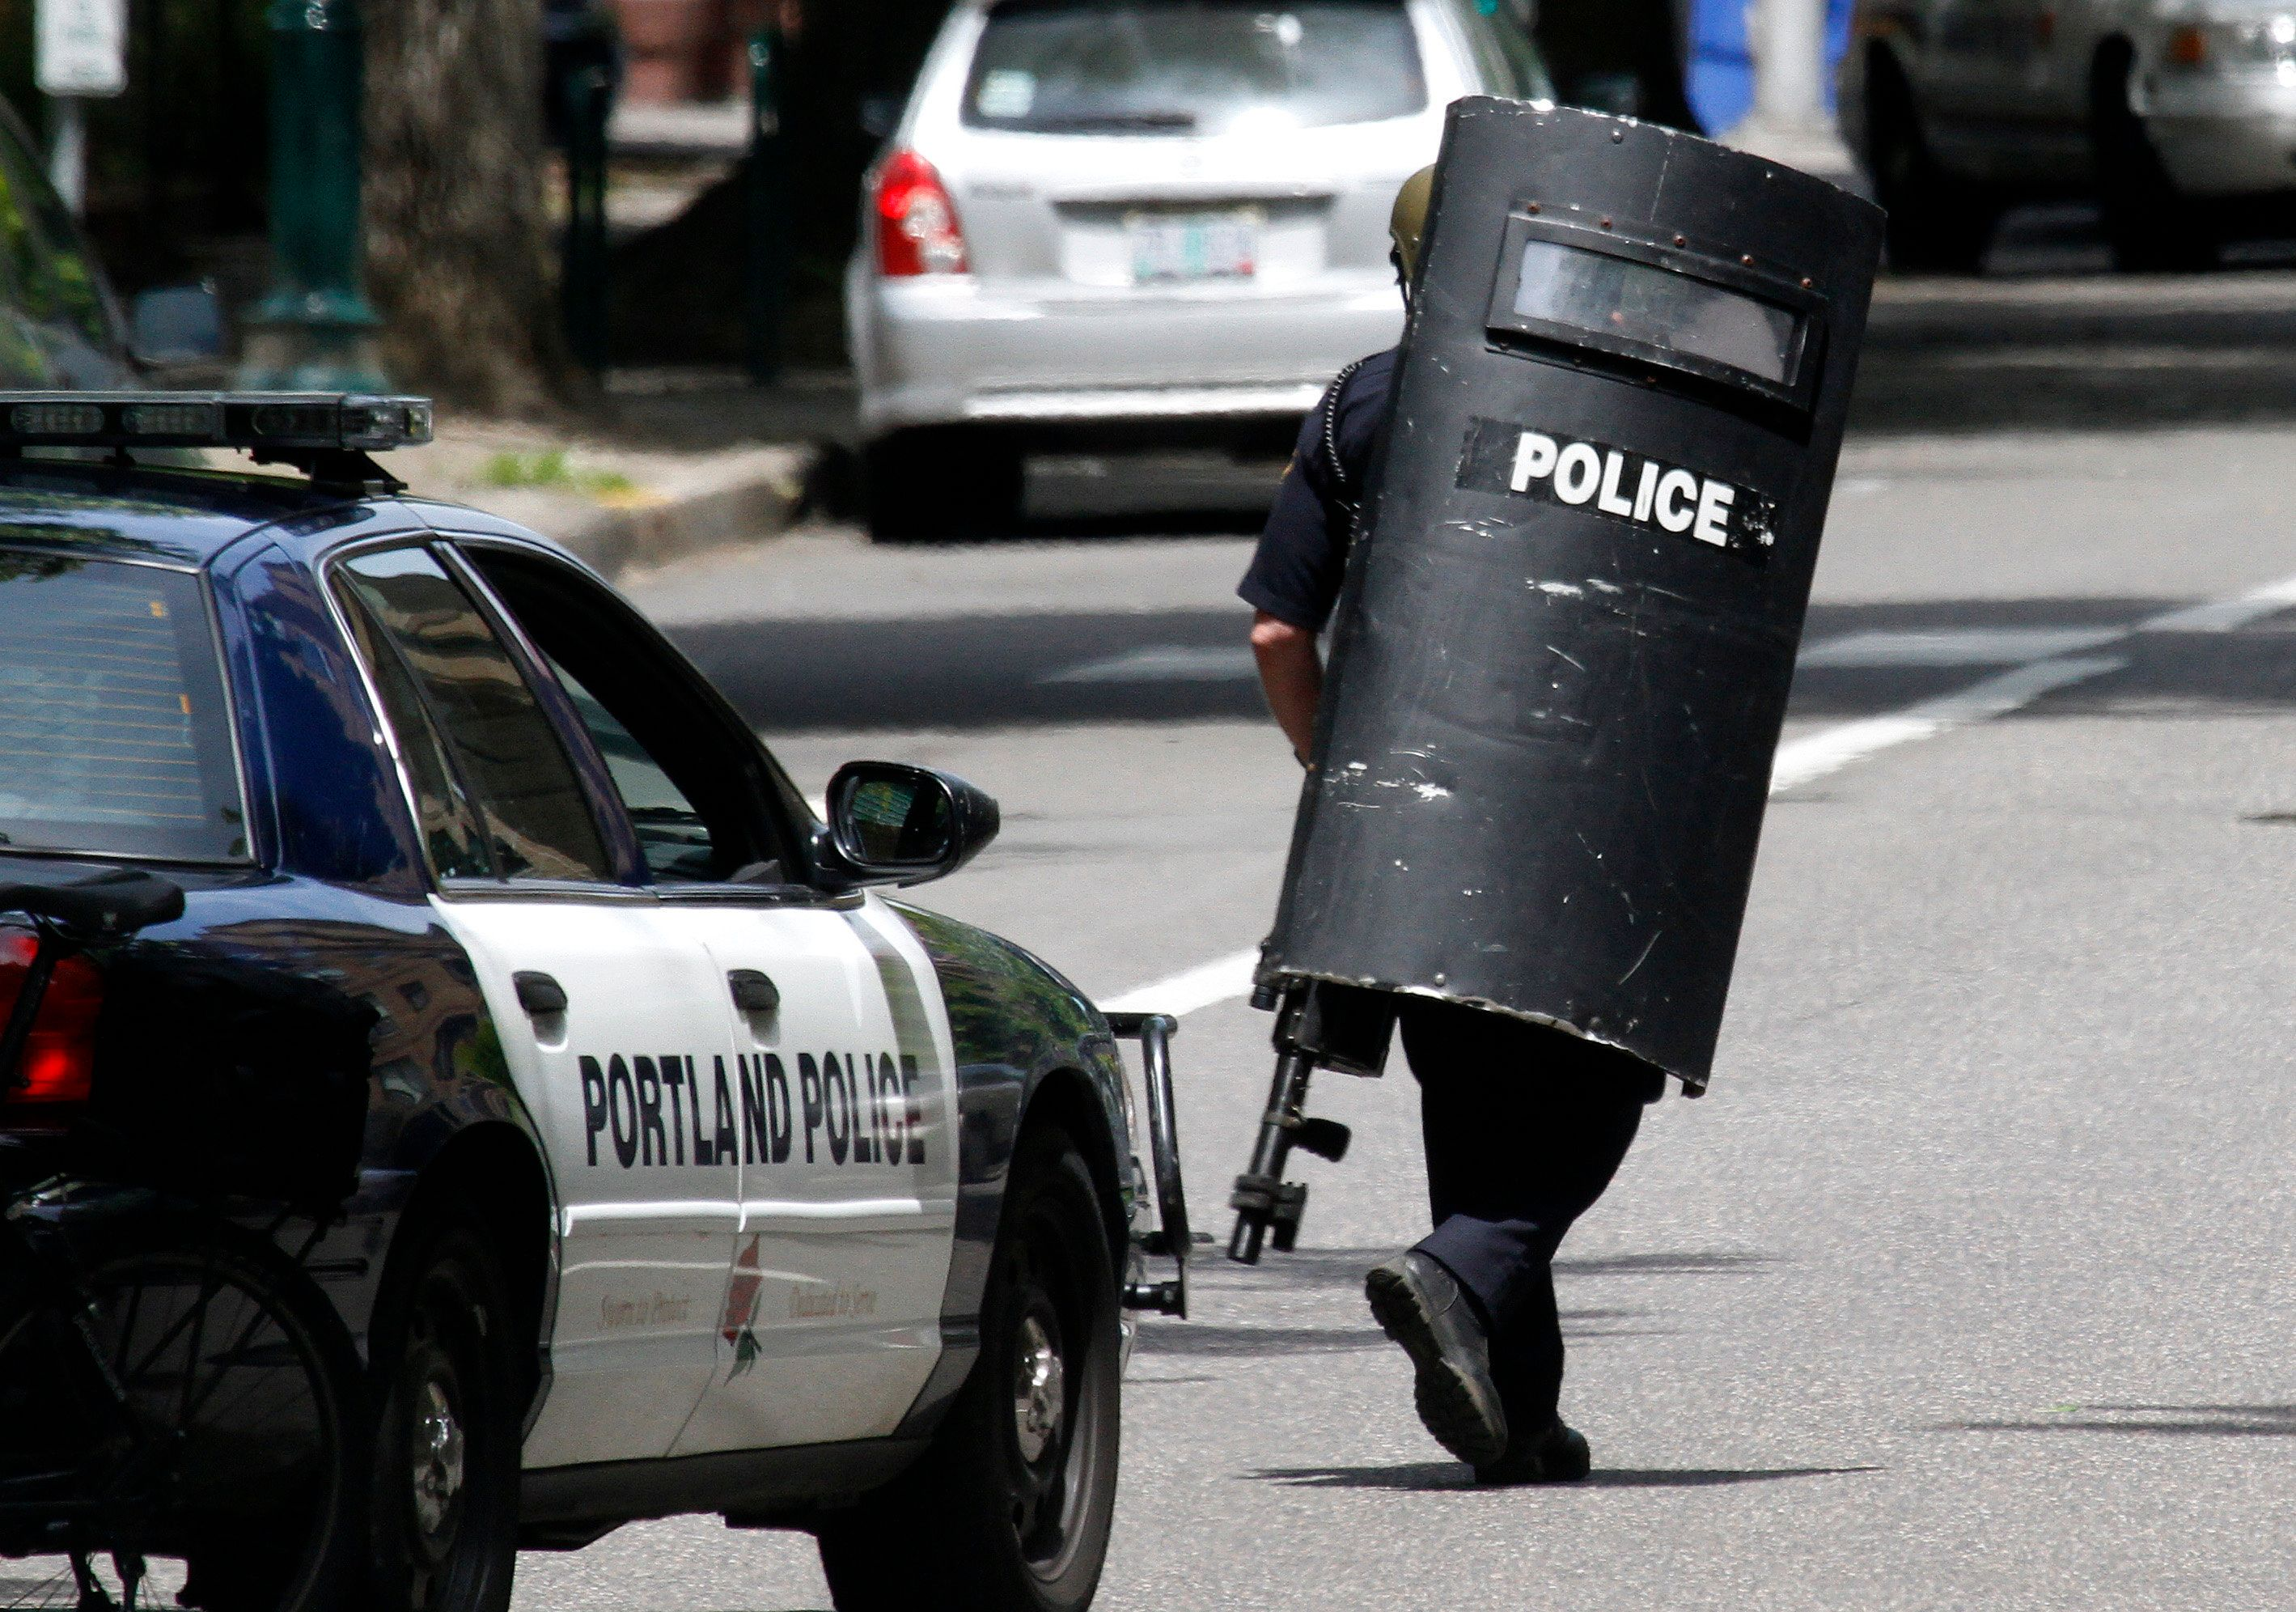 A Portland police officer heads down the street while looking for a man who is alleged to have pulled a handgun on a Portland State University security officer when the officer approached him and another man in Portland, Ore., Monday, June 11, 2012. Police cordoned off and searched a parking structure near the campus but found no gunman. (AP Photo/Don Ryan)